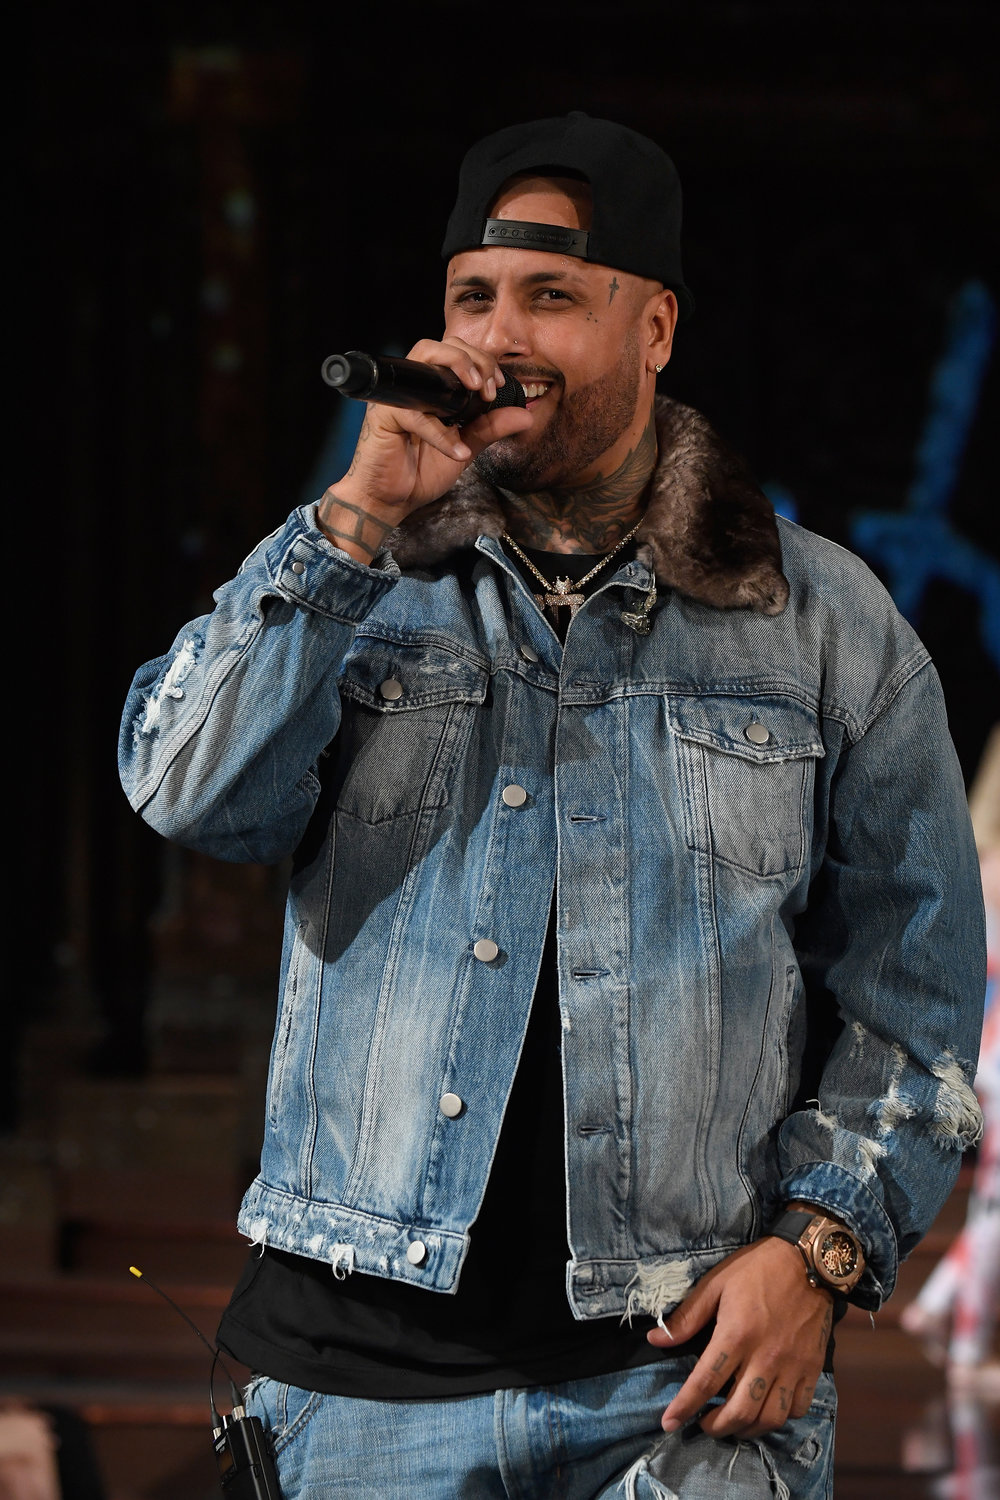 Nicky Jam performs at NYFW Powered By Art Hearts Fashion on September 6, 2018 in New York City. © Arun Nevader/Getty Images